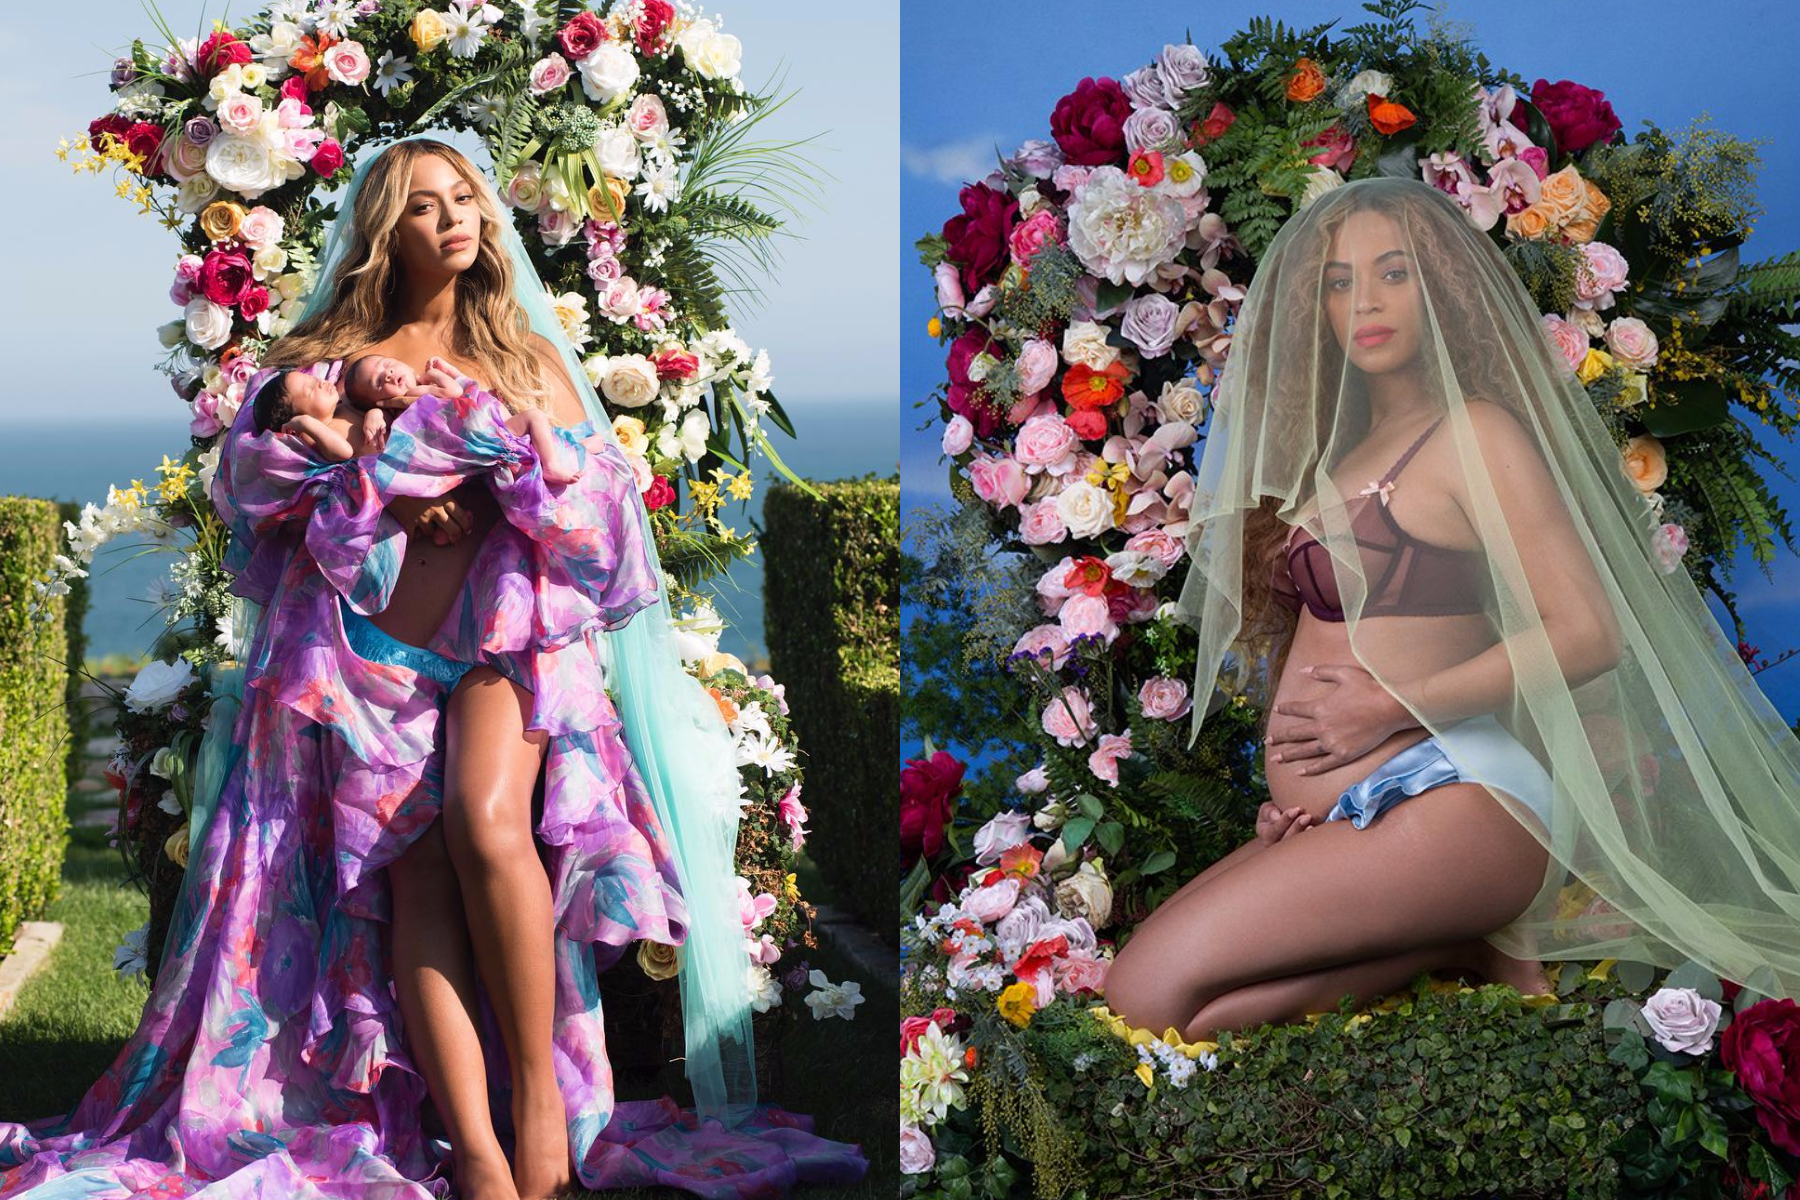 Beyoncé's Twins Reveal Outfit Was First Modeled by a Man